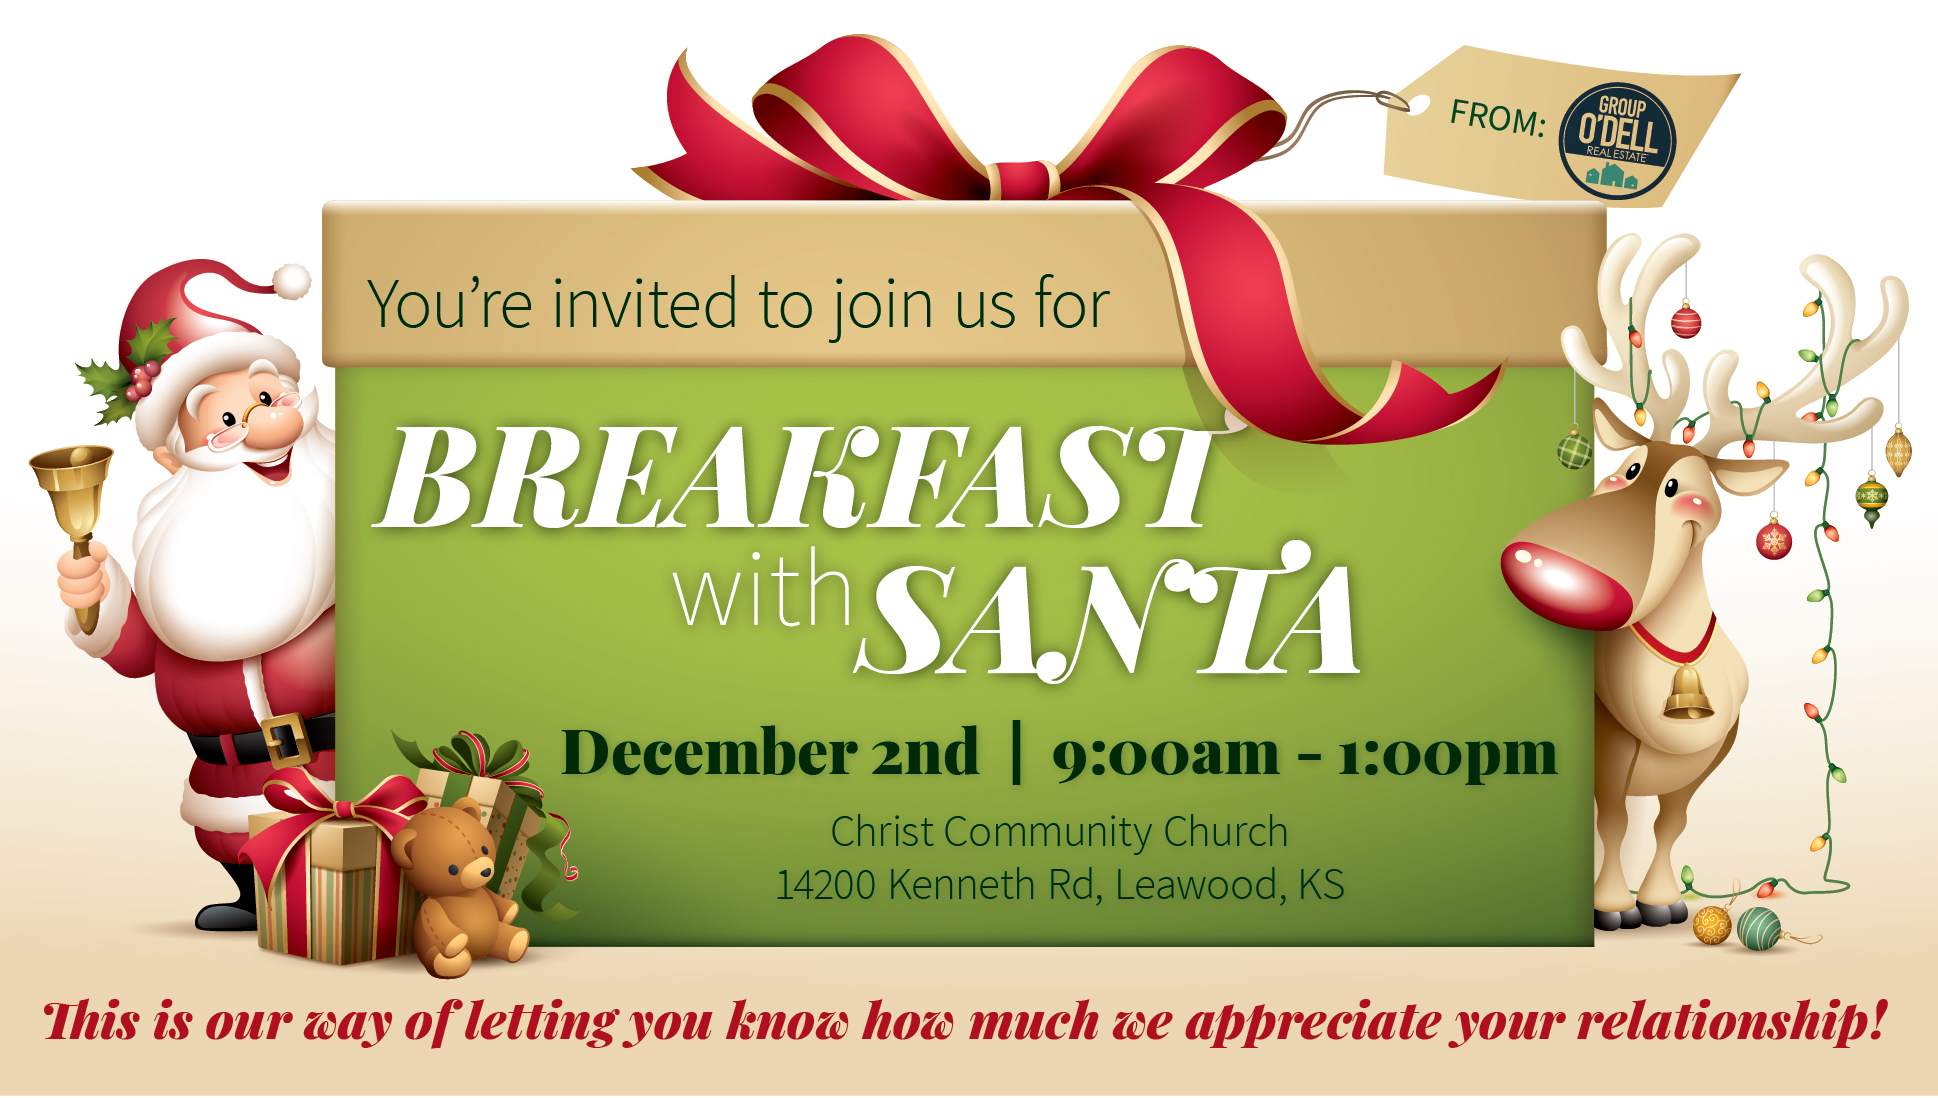 Group O'Dell's 2017 Breakfast with Santa Client Appreciation Event